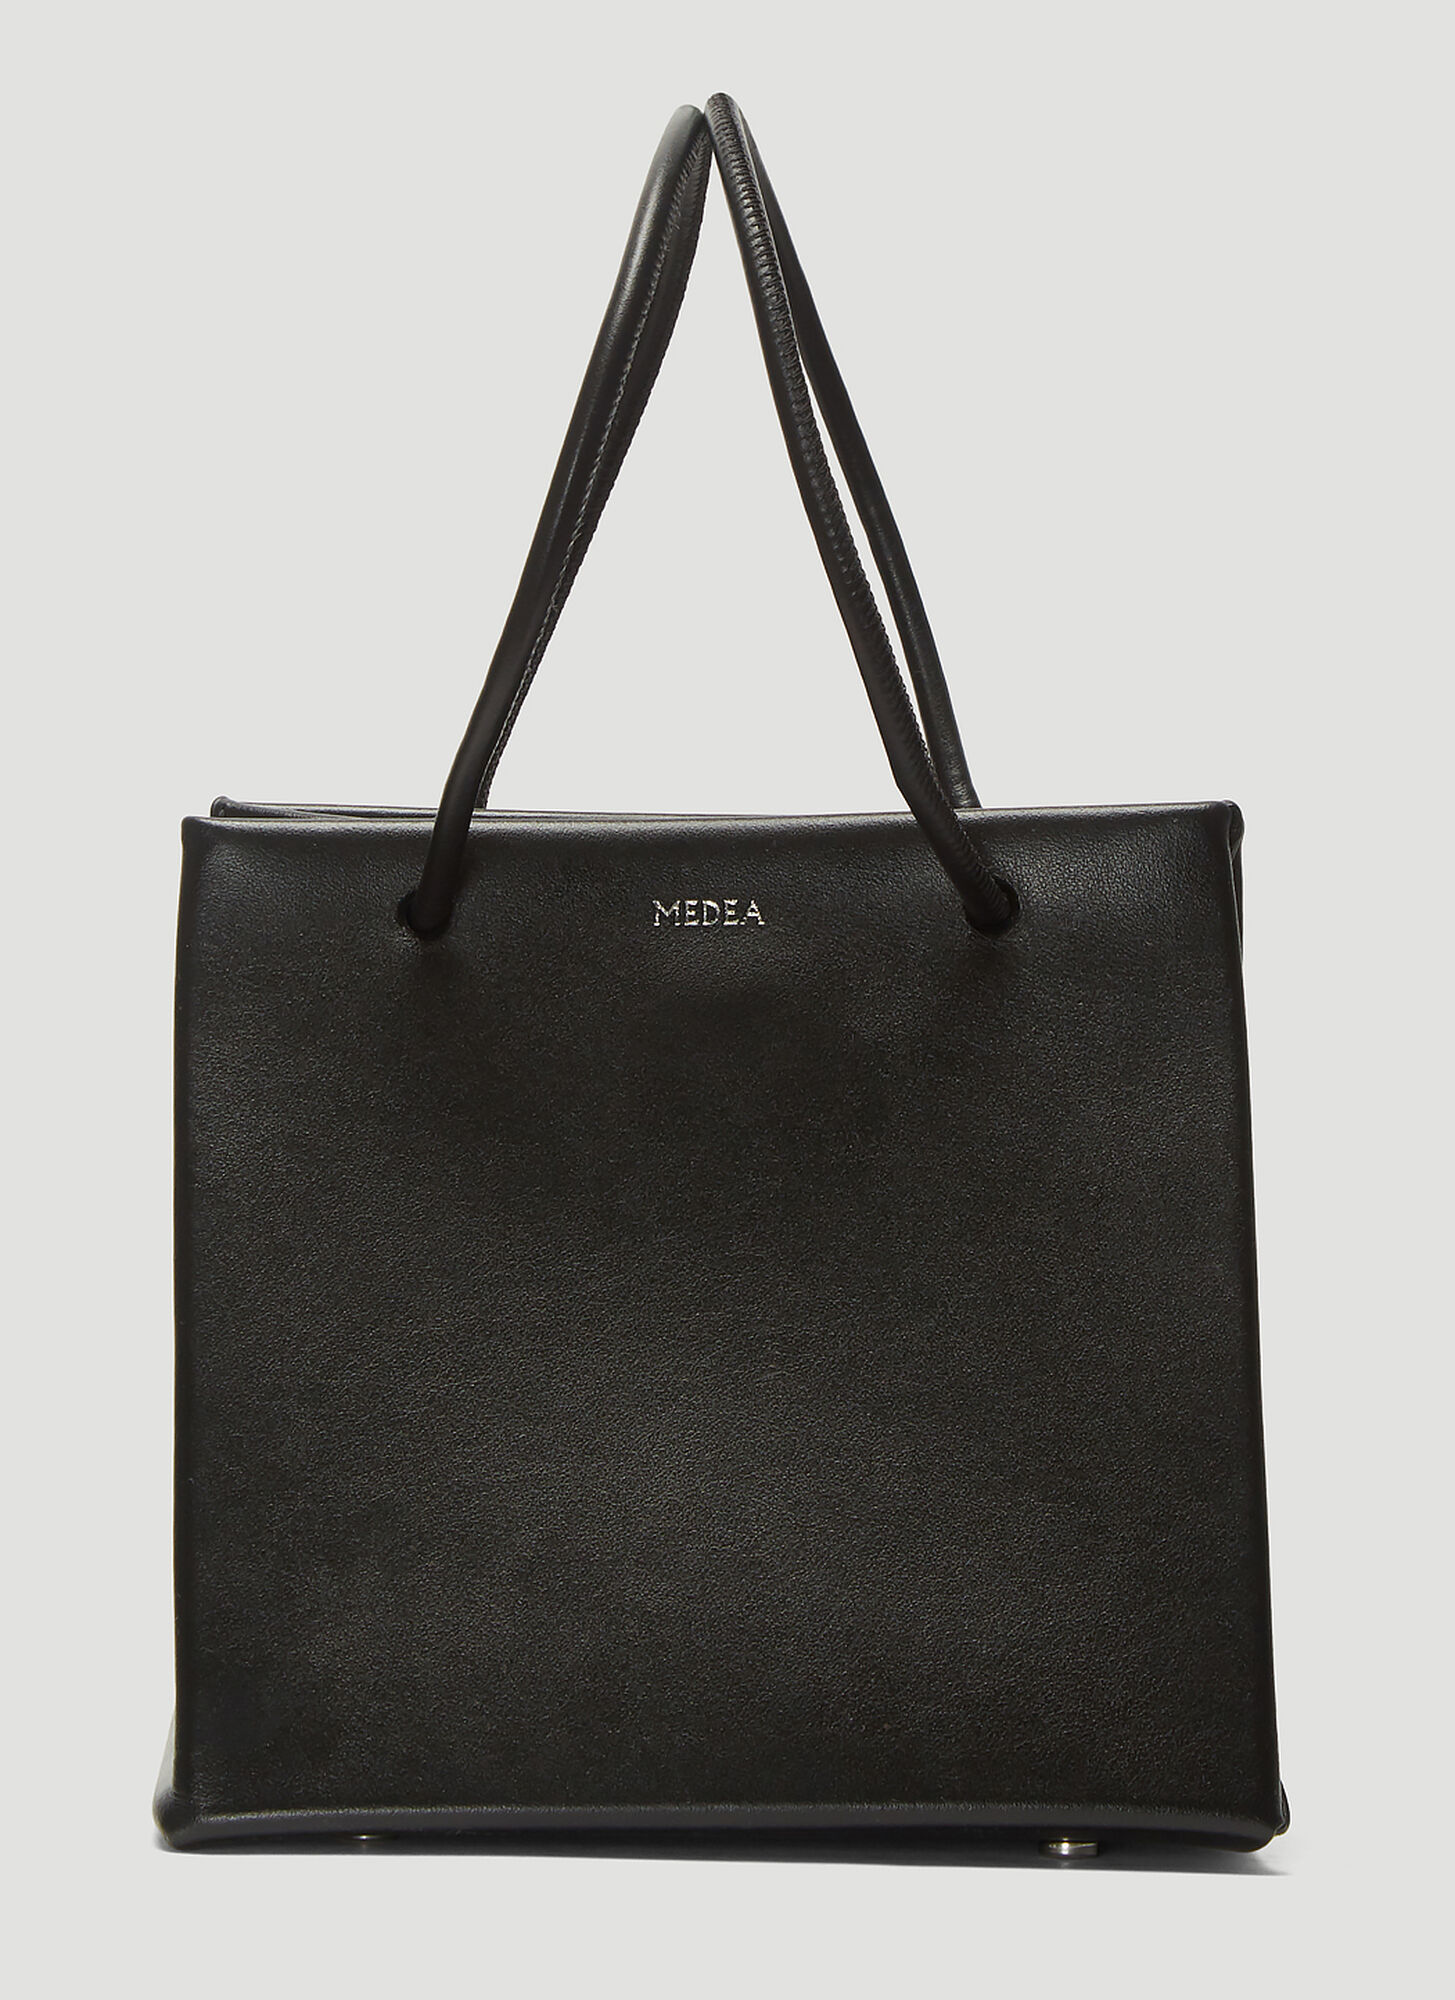 Medea Ice Leather Bag in Black